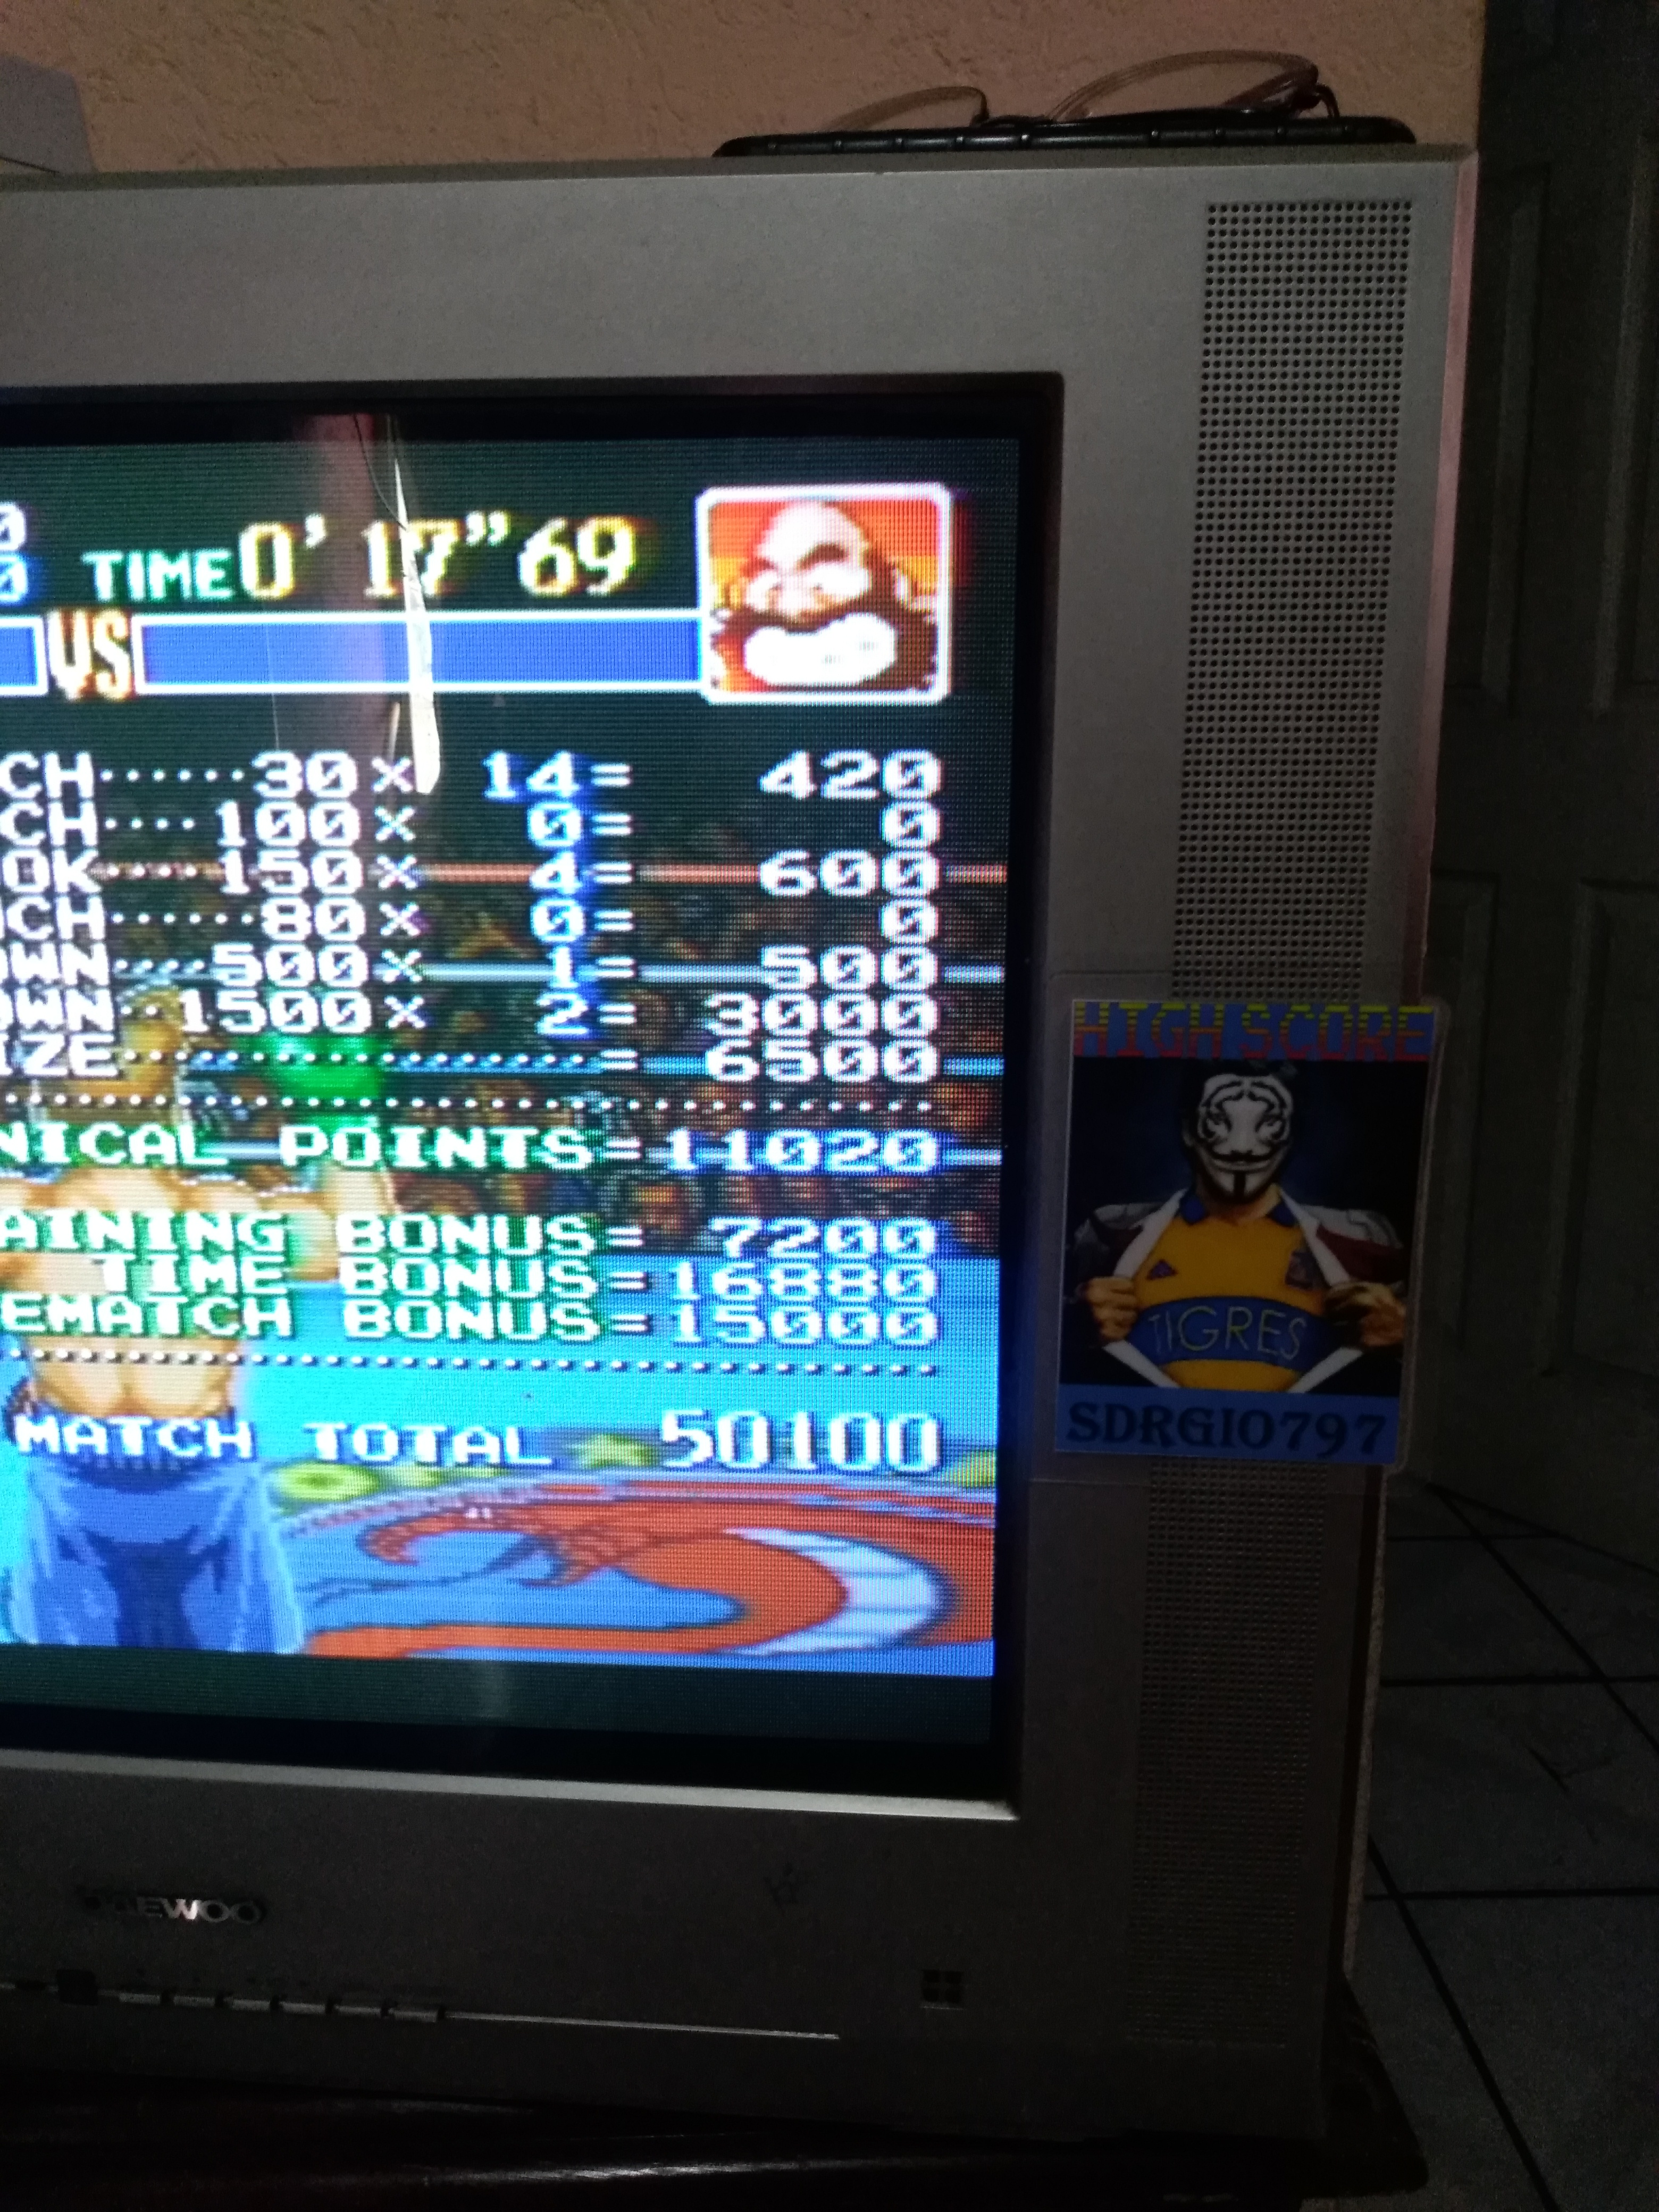 Sdrgio797: Super Punch-Out!! [Bear Hugger] (SNES/Super Famicom) 50,100 points on 2020-07-25 15:11:42